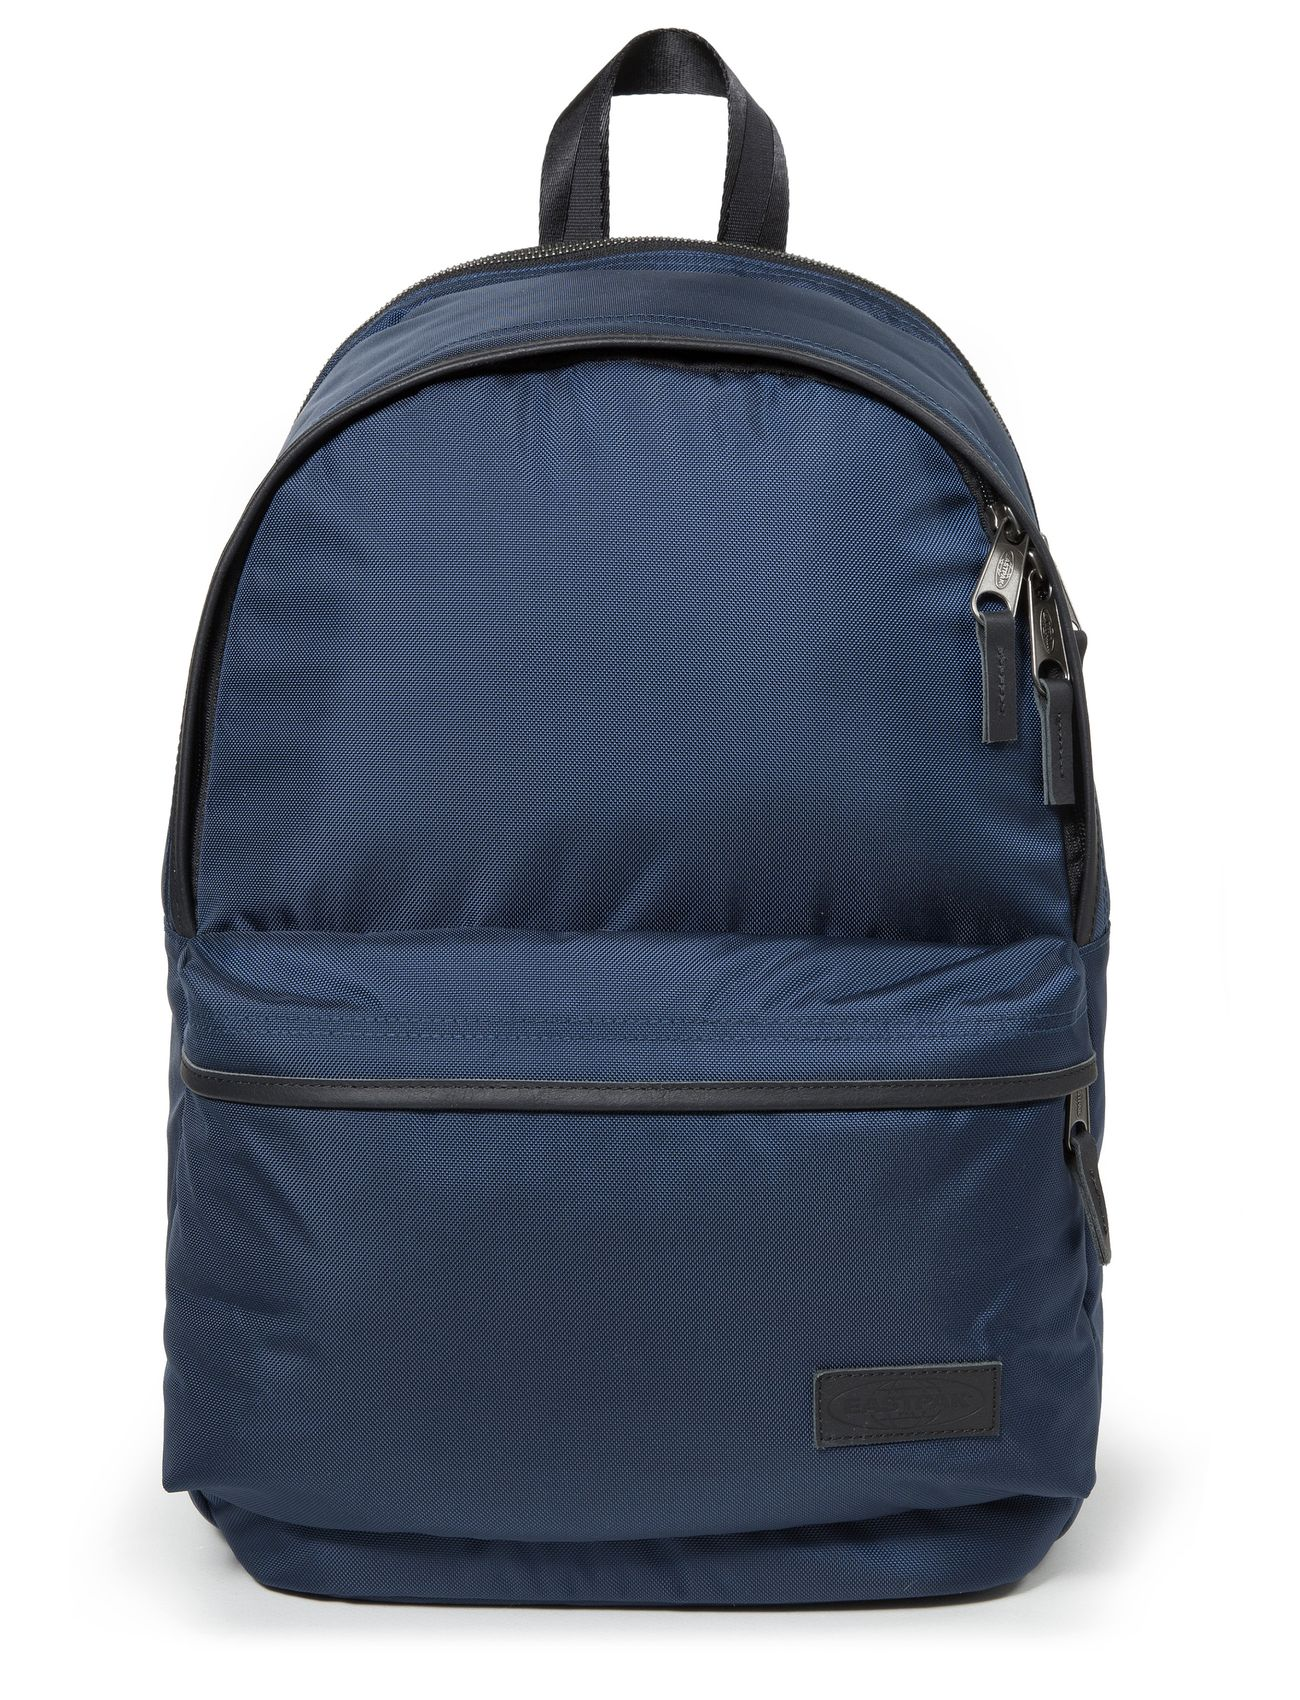 EASTPAK Back To Work Rucksack Tasche Blau EASTPAK